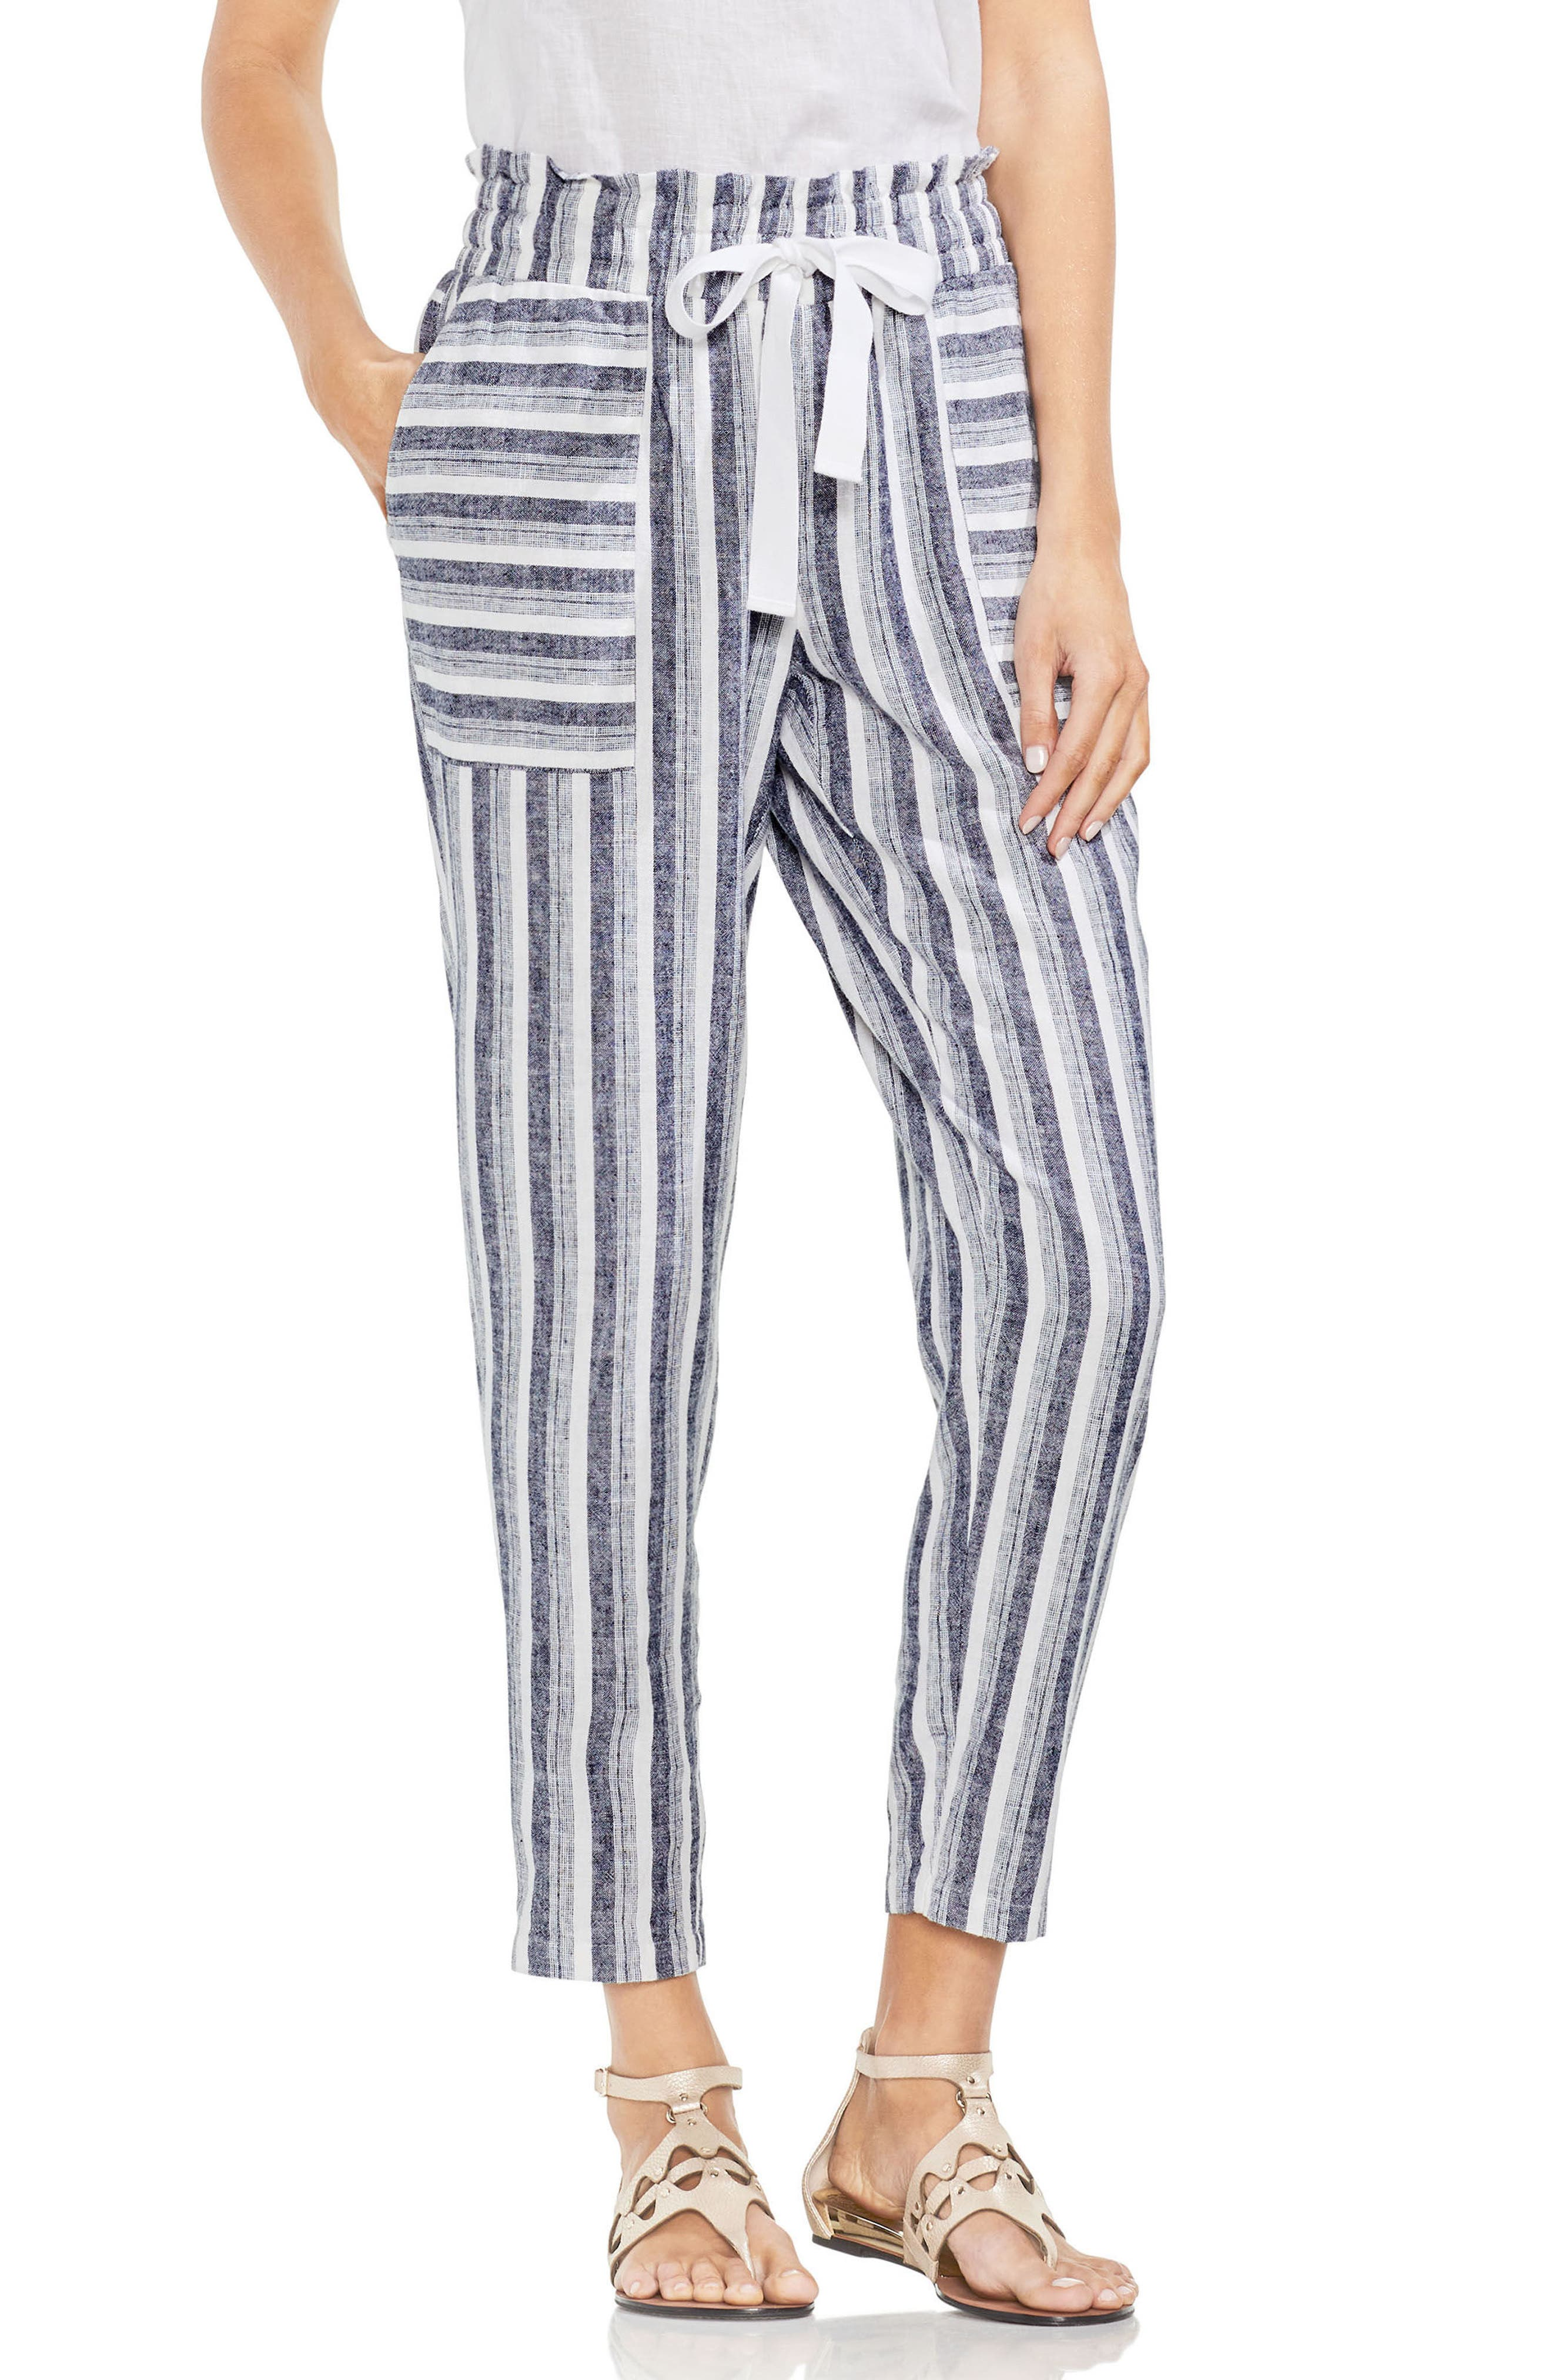 Shore Linen Blend Stripe Drawstring Pants,                             Main thumbnail 1, color,                             145